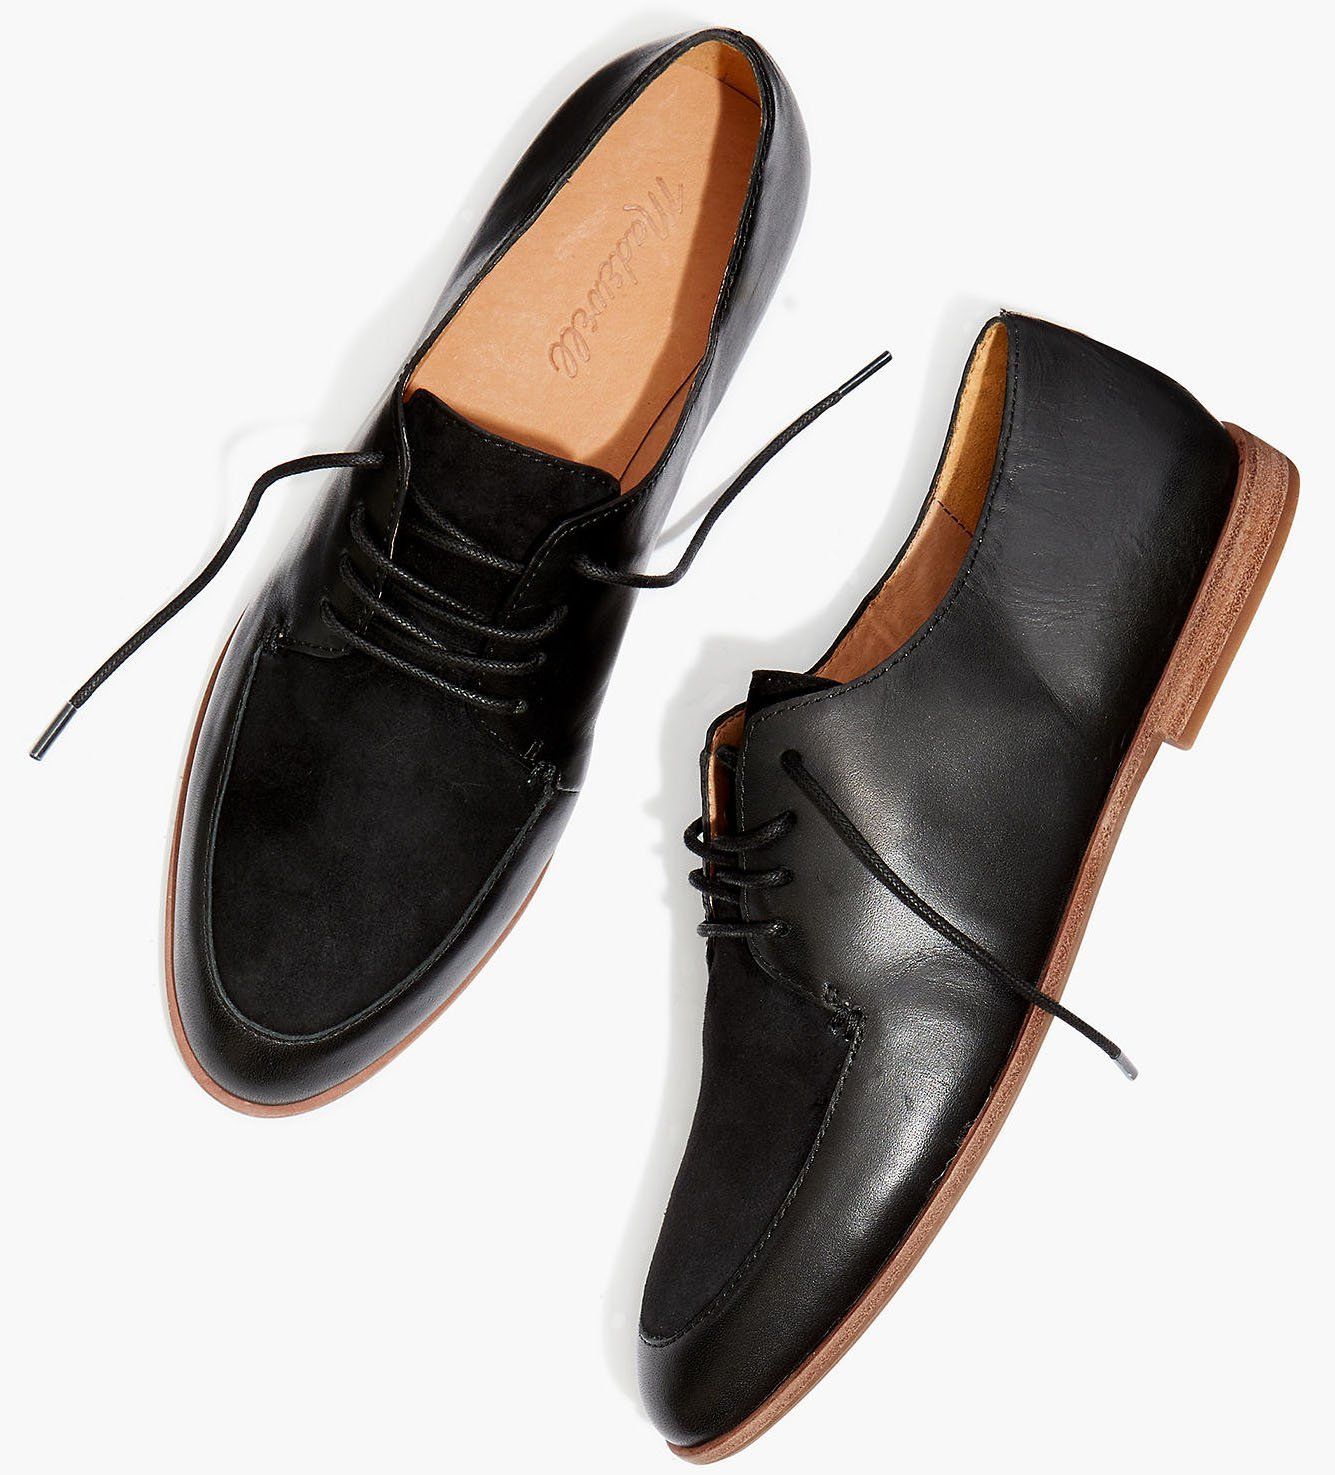 Casual yet refined leather and suede oxfords that have boyish, timeless appeal